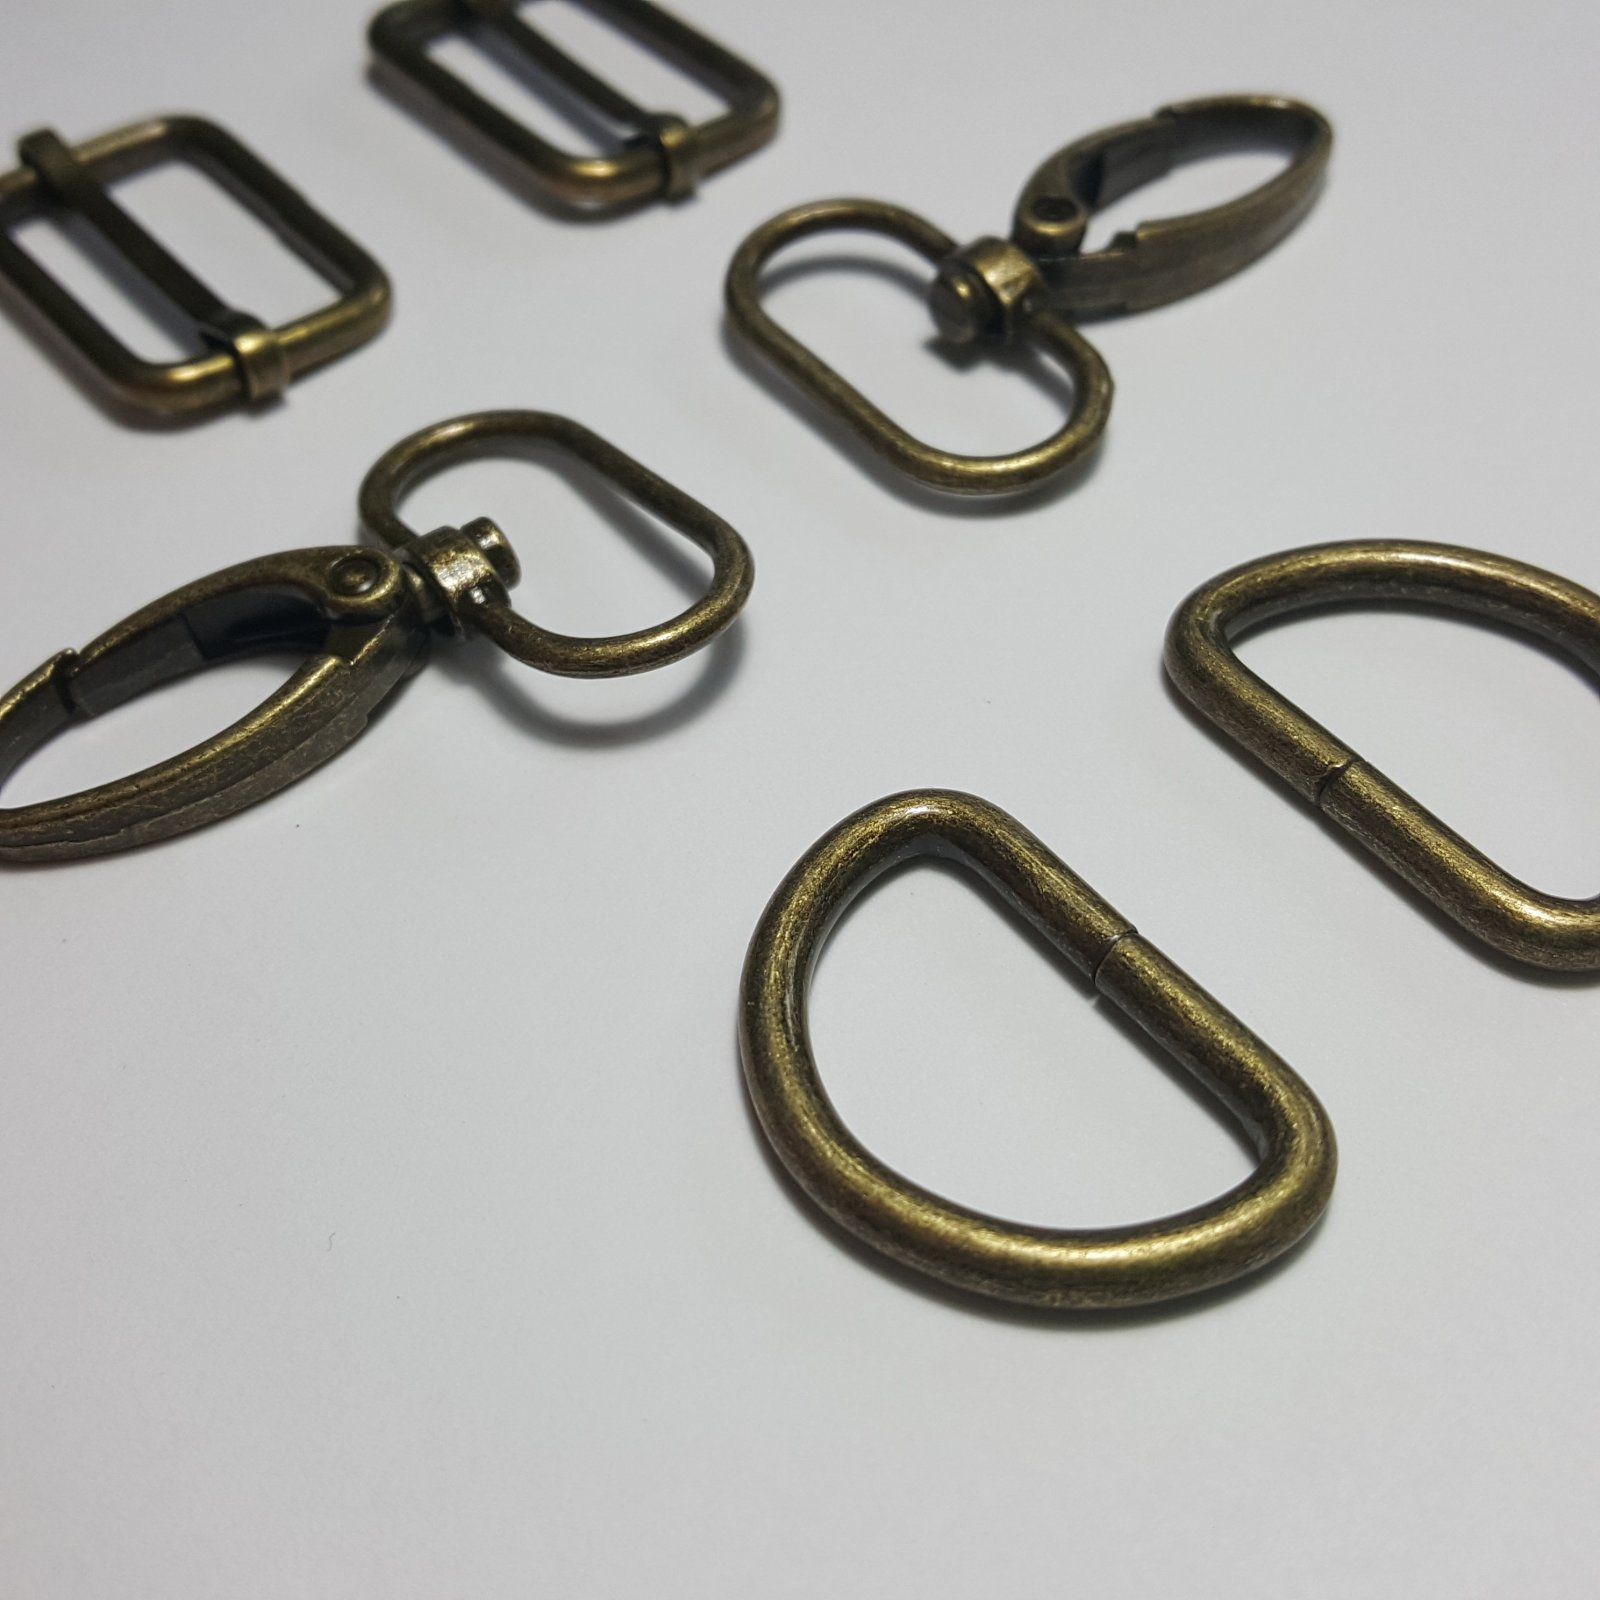 1- 2 D Rings + 2 Slides + 2 Swivels - Brass